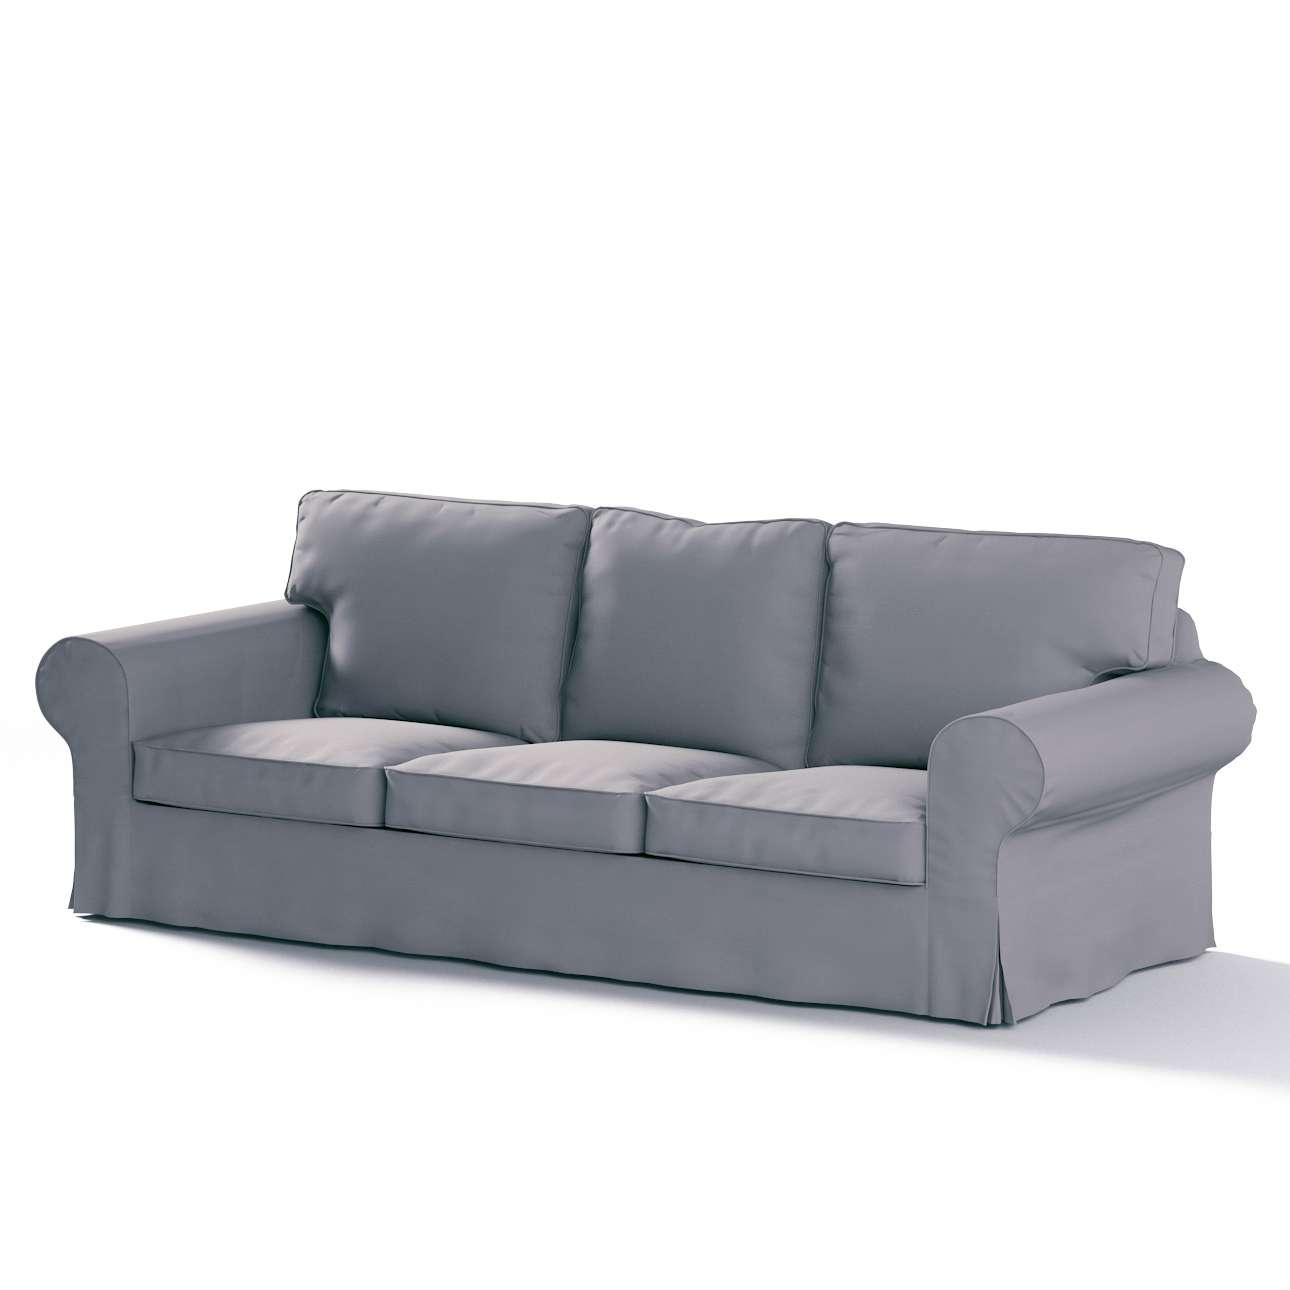 hot sale online 0e00b c91f0 Ektorp 3-seater sofa bed cover (for model on sale in Ikea 2004-2012)